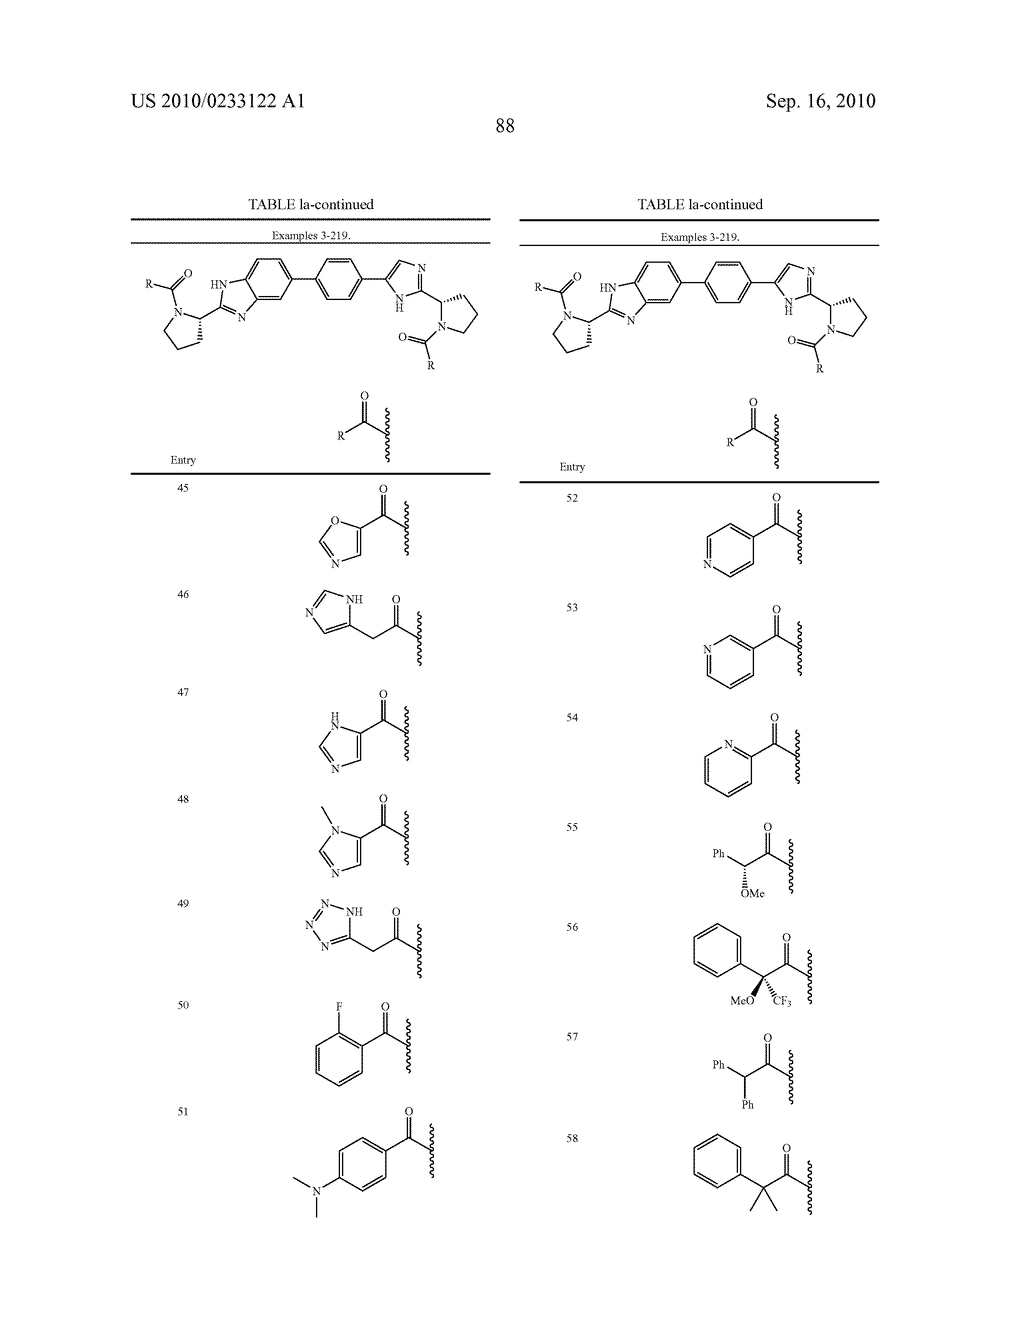 NOVEL BENZIMIDAZOLE DERIVATIVES - diagram, schematic, and image 89